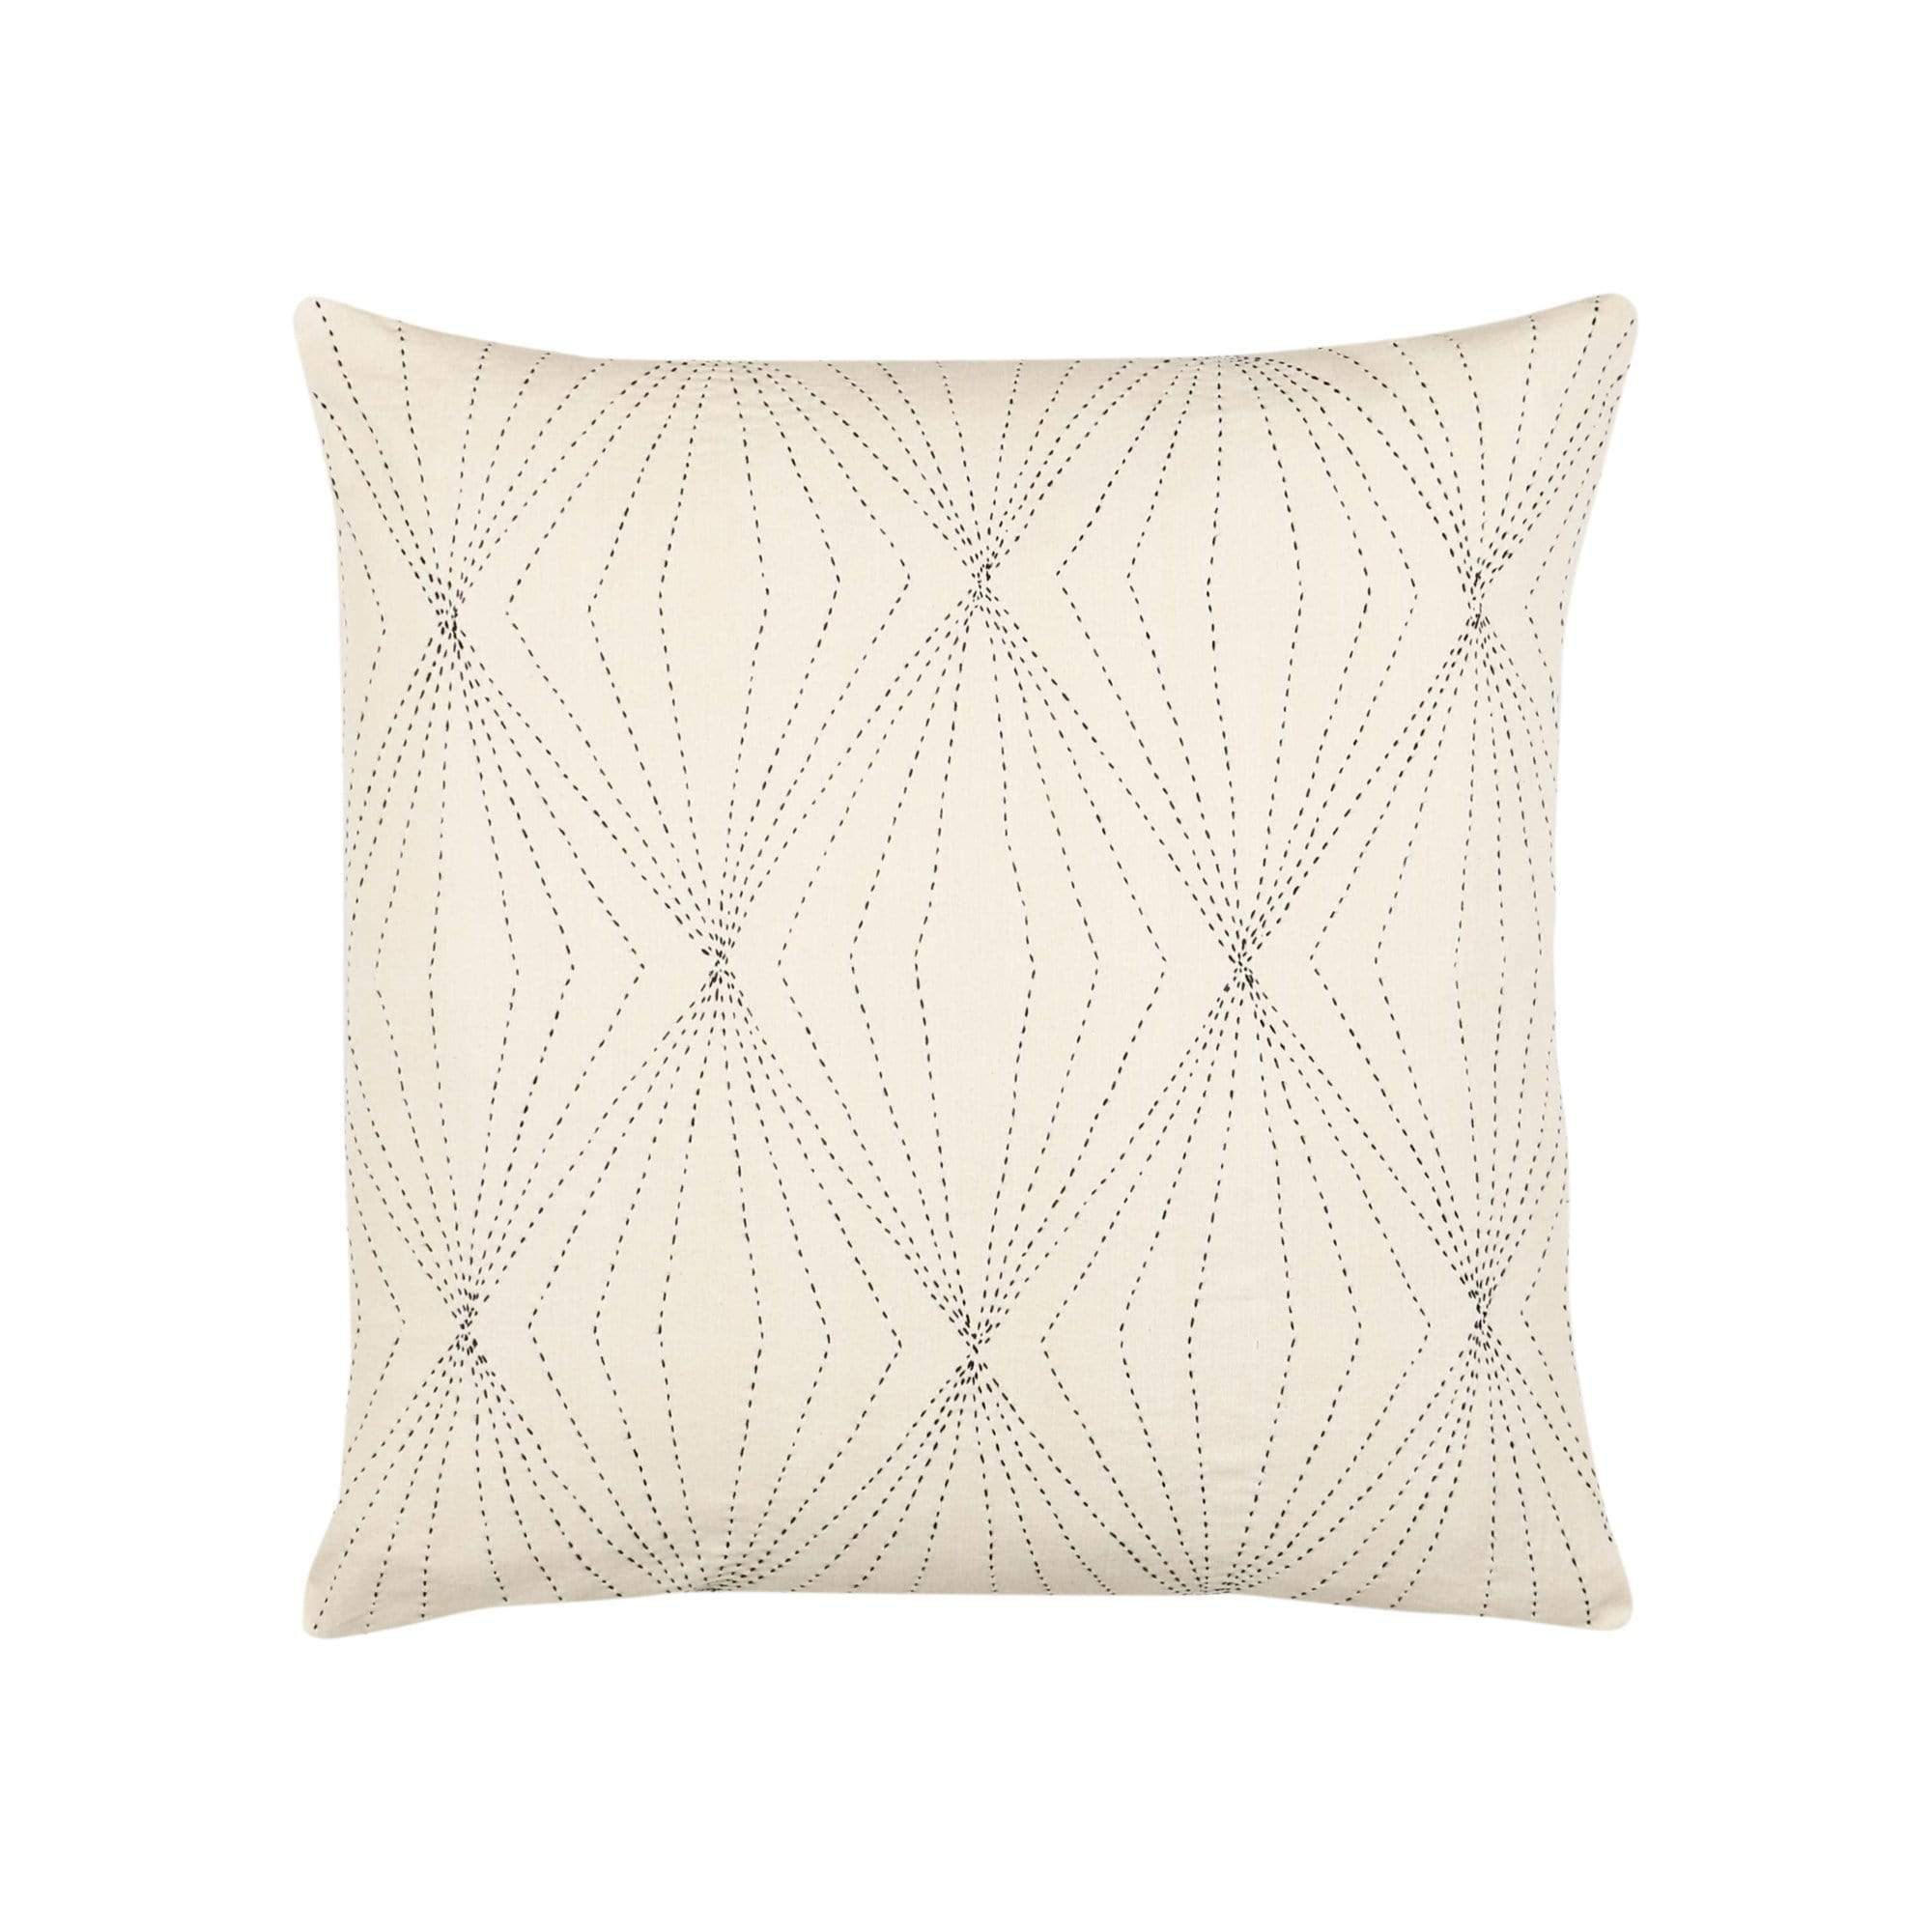 Anchal Project Cushions + Throws Bone Prism Throw Pillow